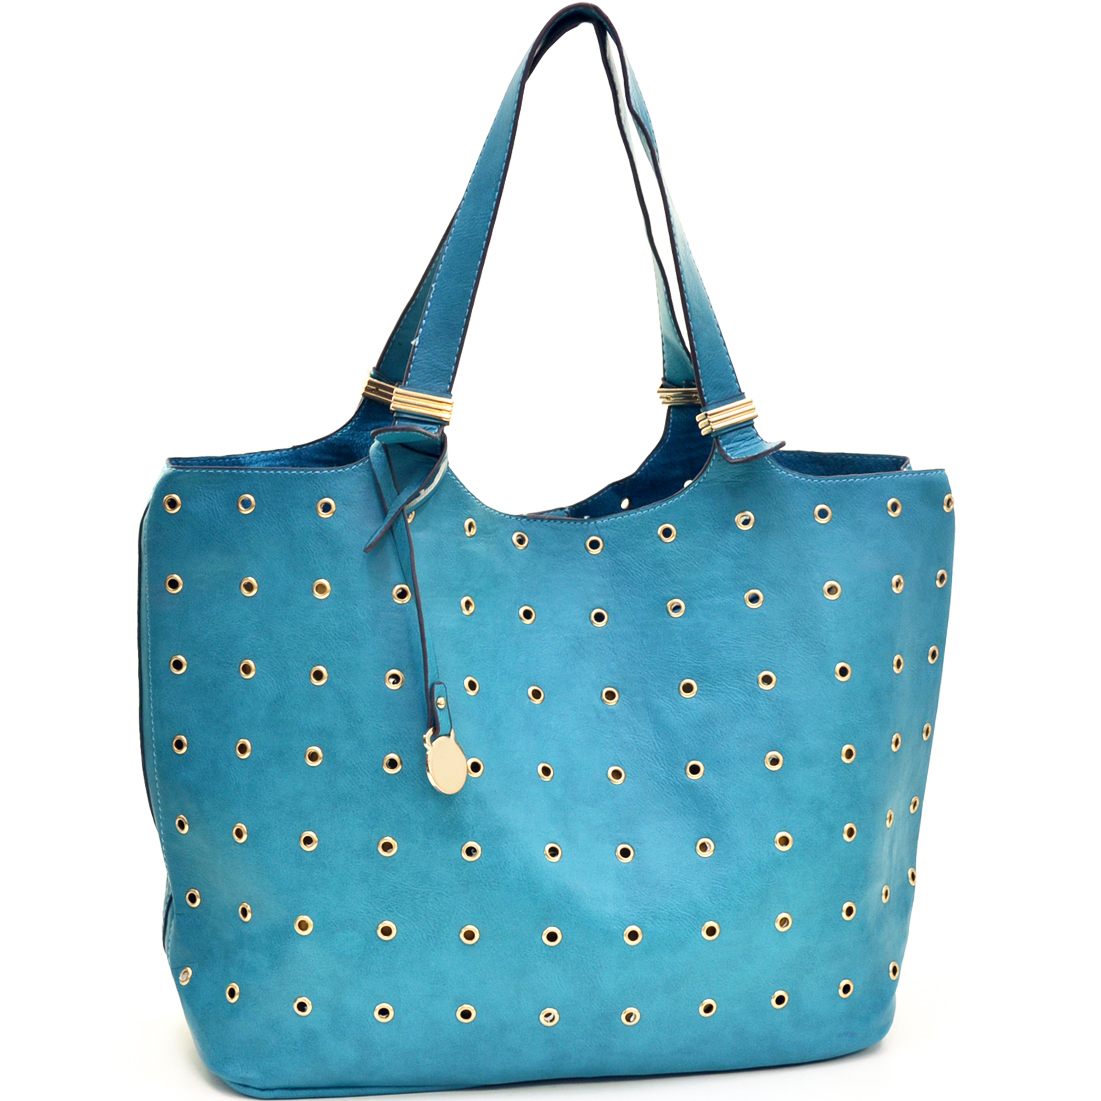 2 in 1 Flat Bottom Eyelet Tote Bag